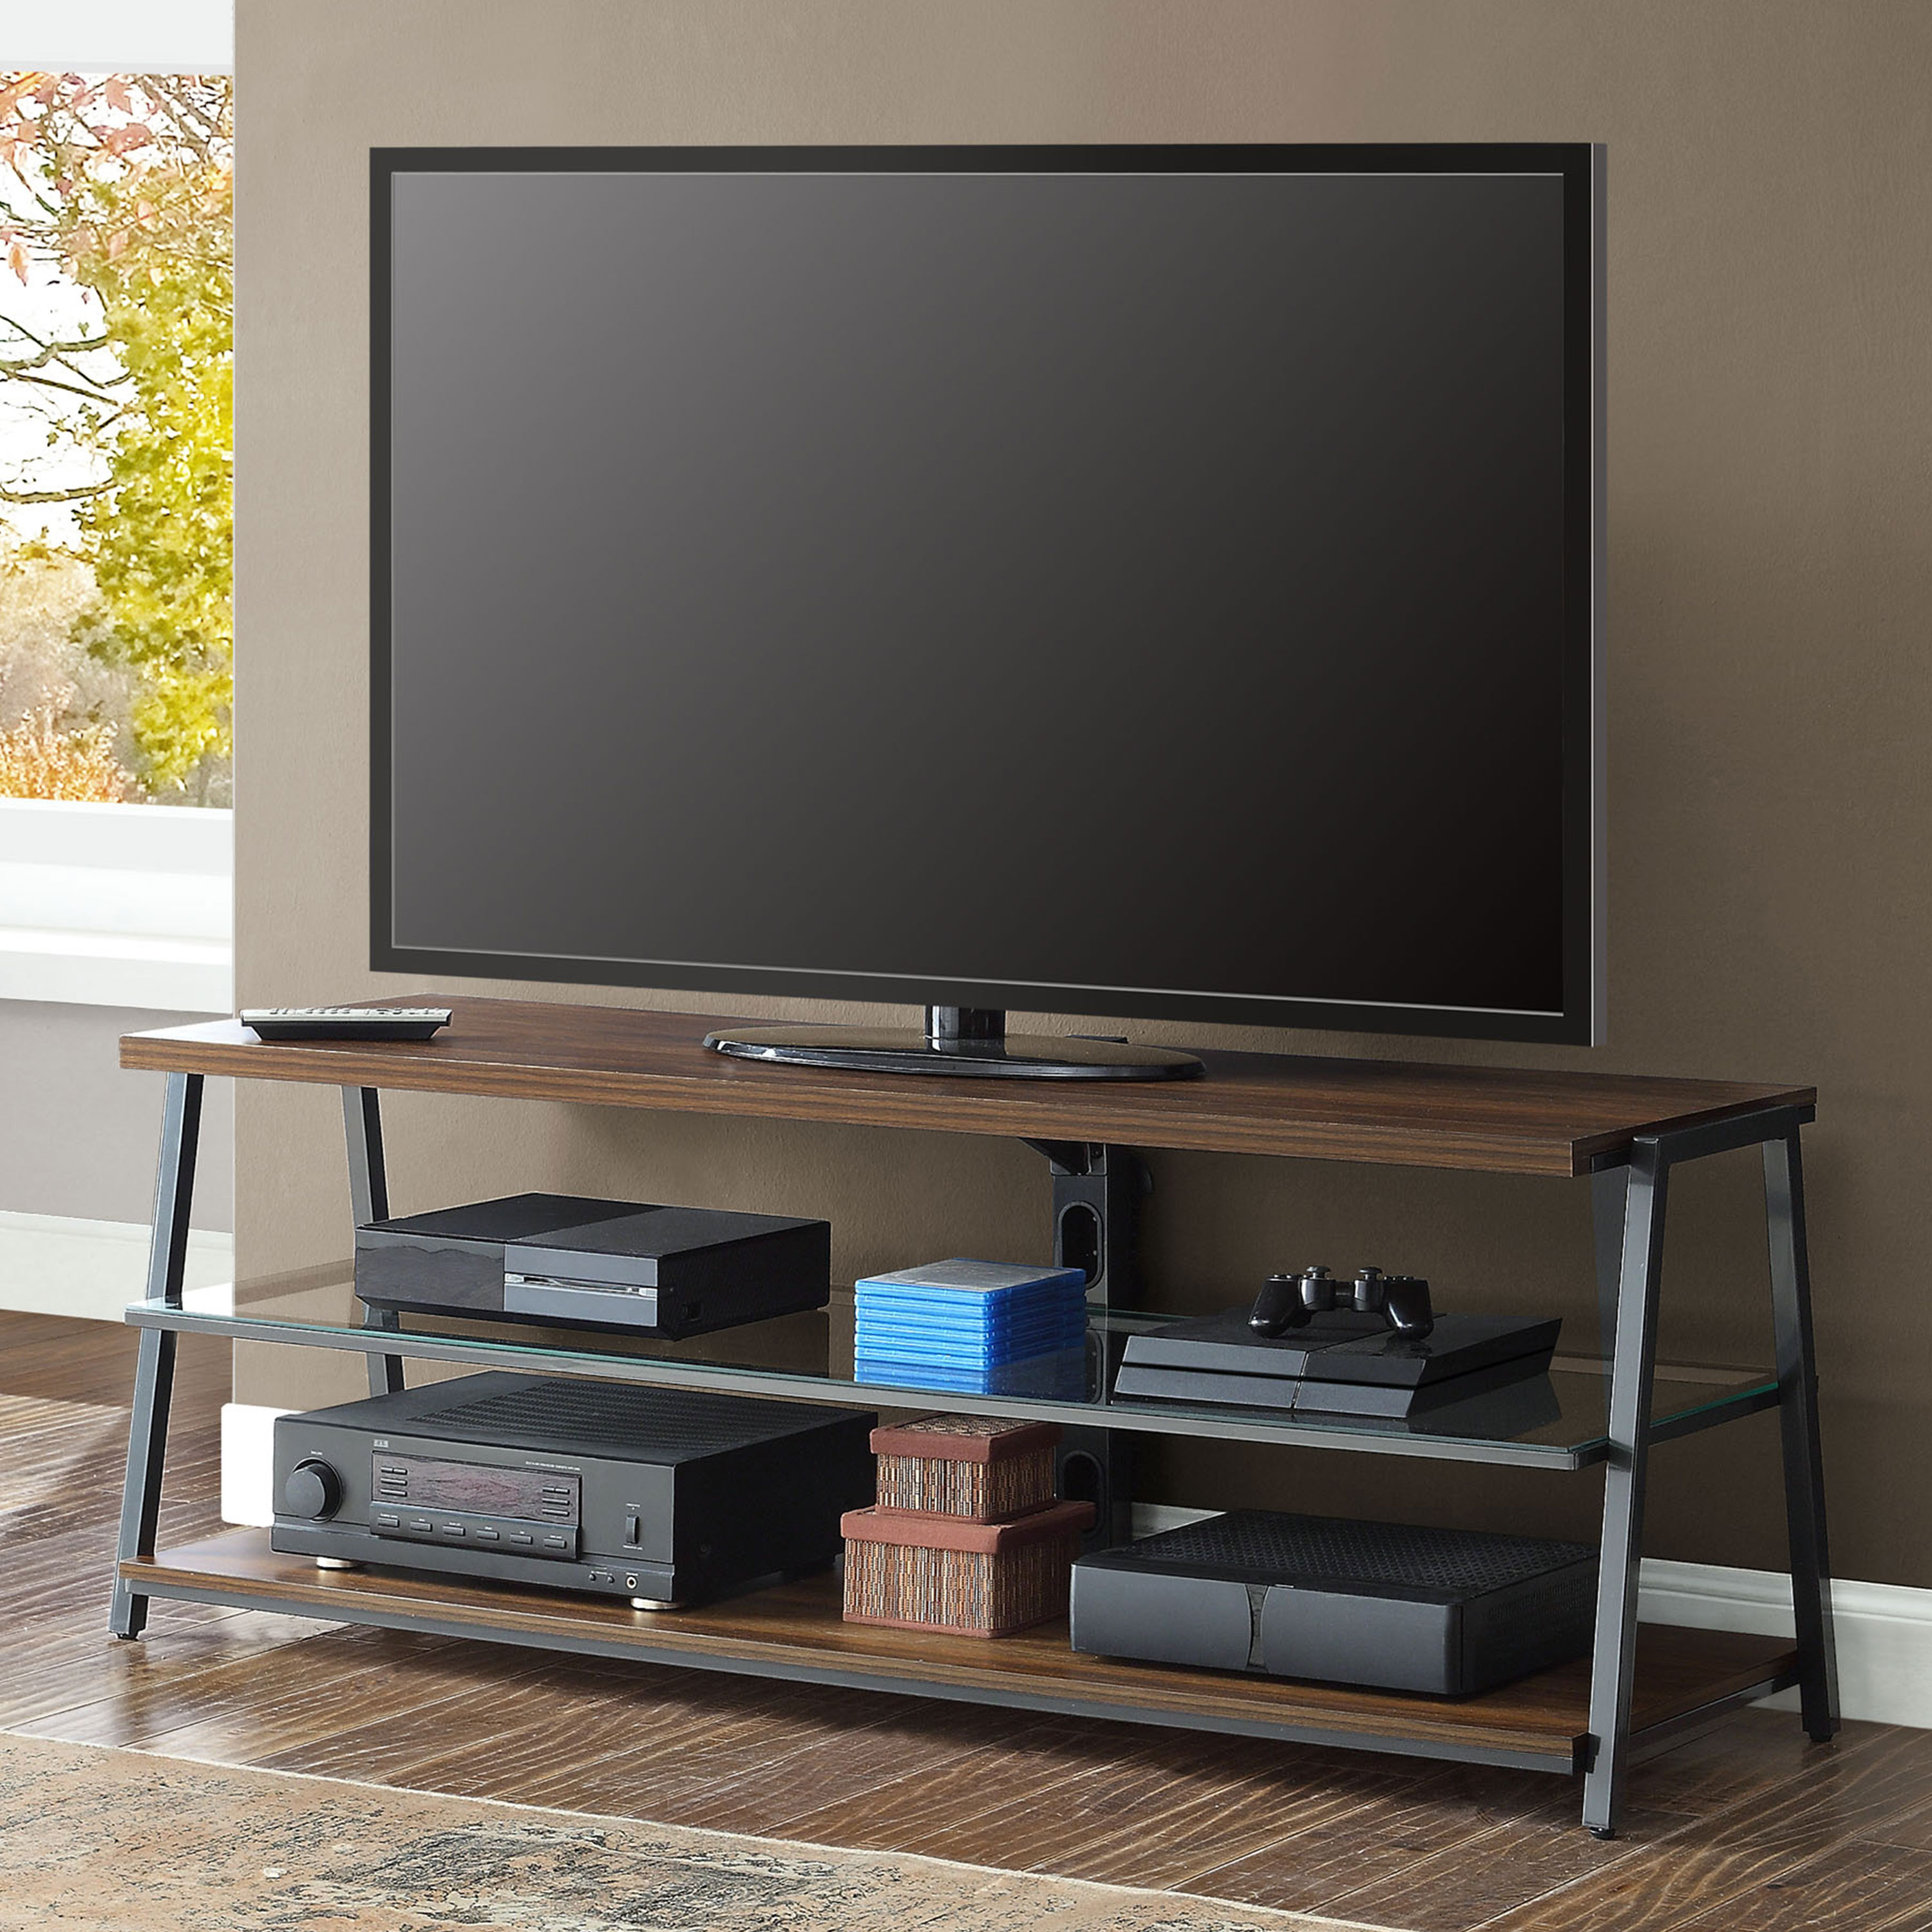 "Mainstays Arris Tv Stand For 70"" Flat Panel Tvs Up To 135 Lbs Throughout Canyon 64 Inch Tv Stands (View 9 of 20)"